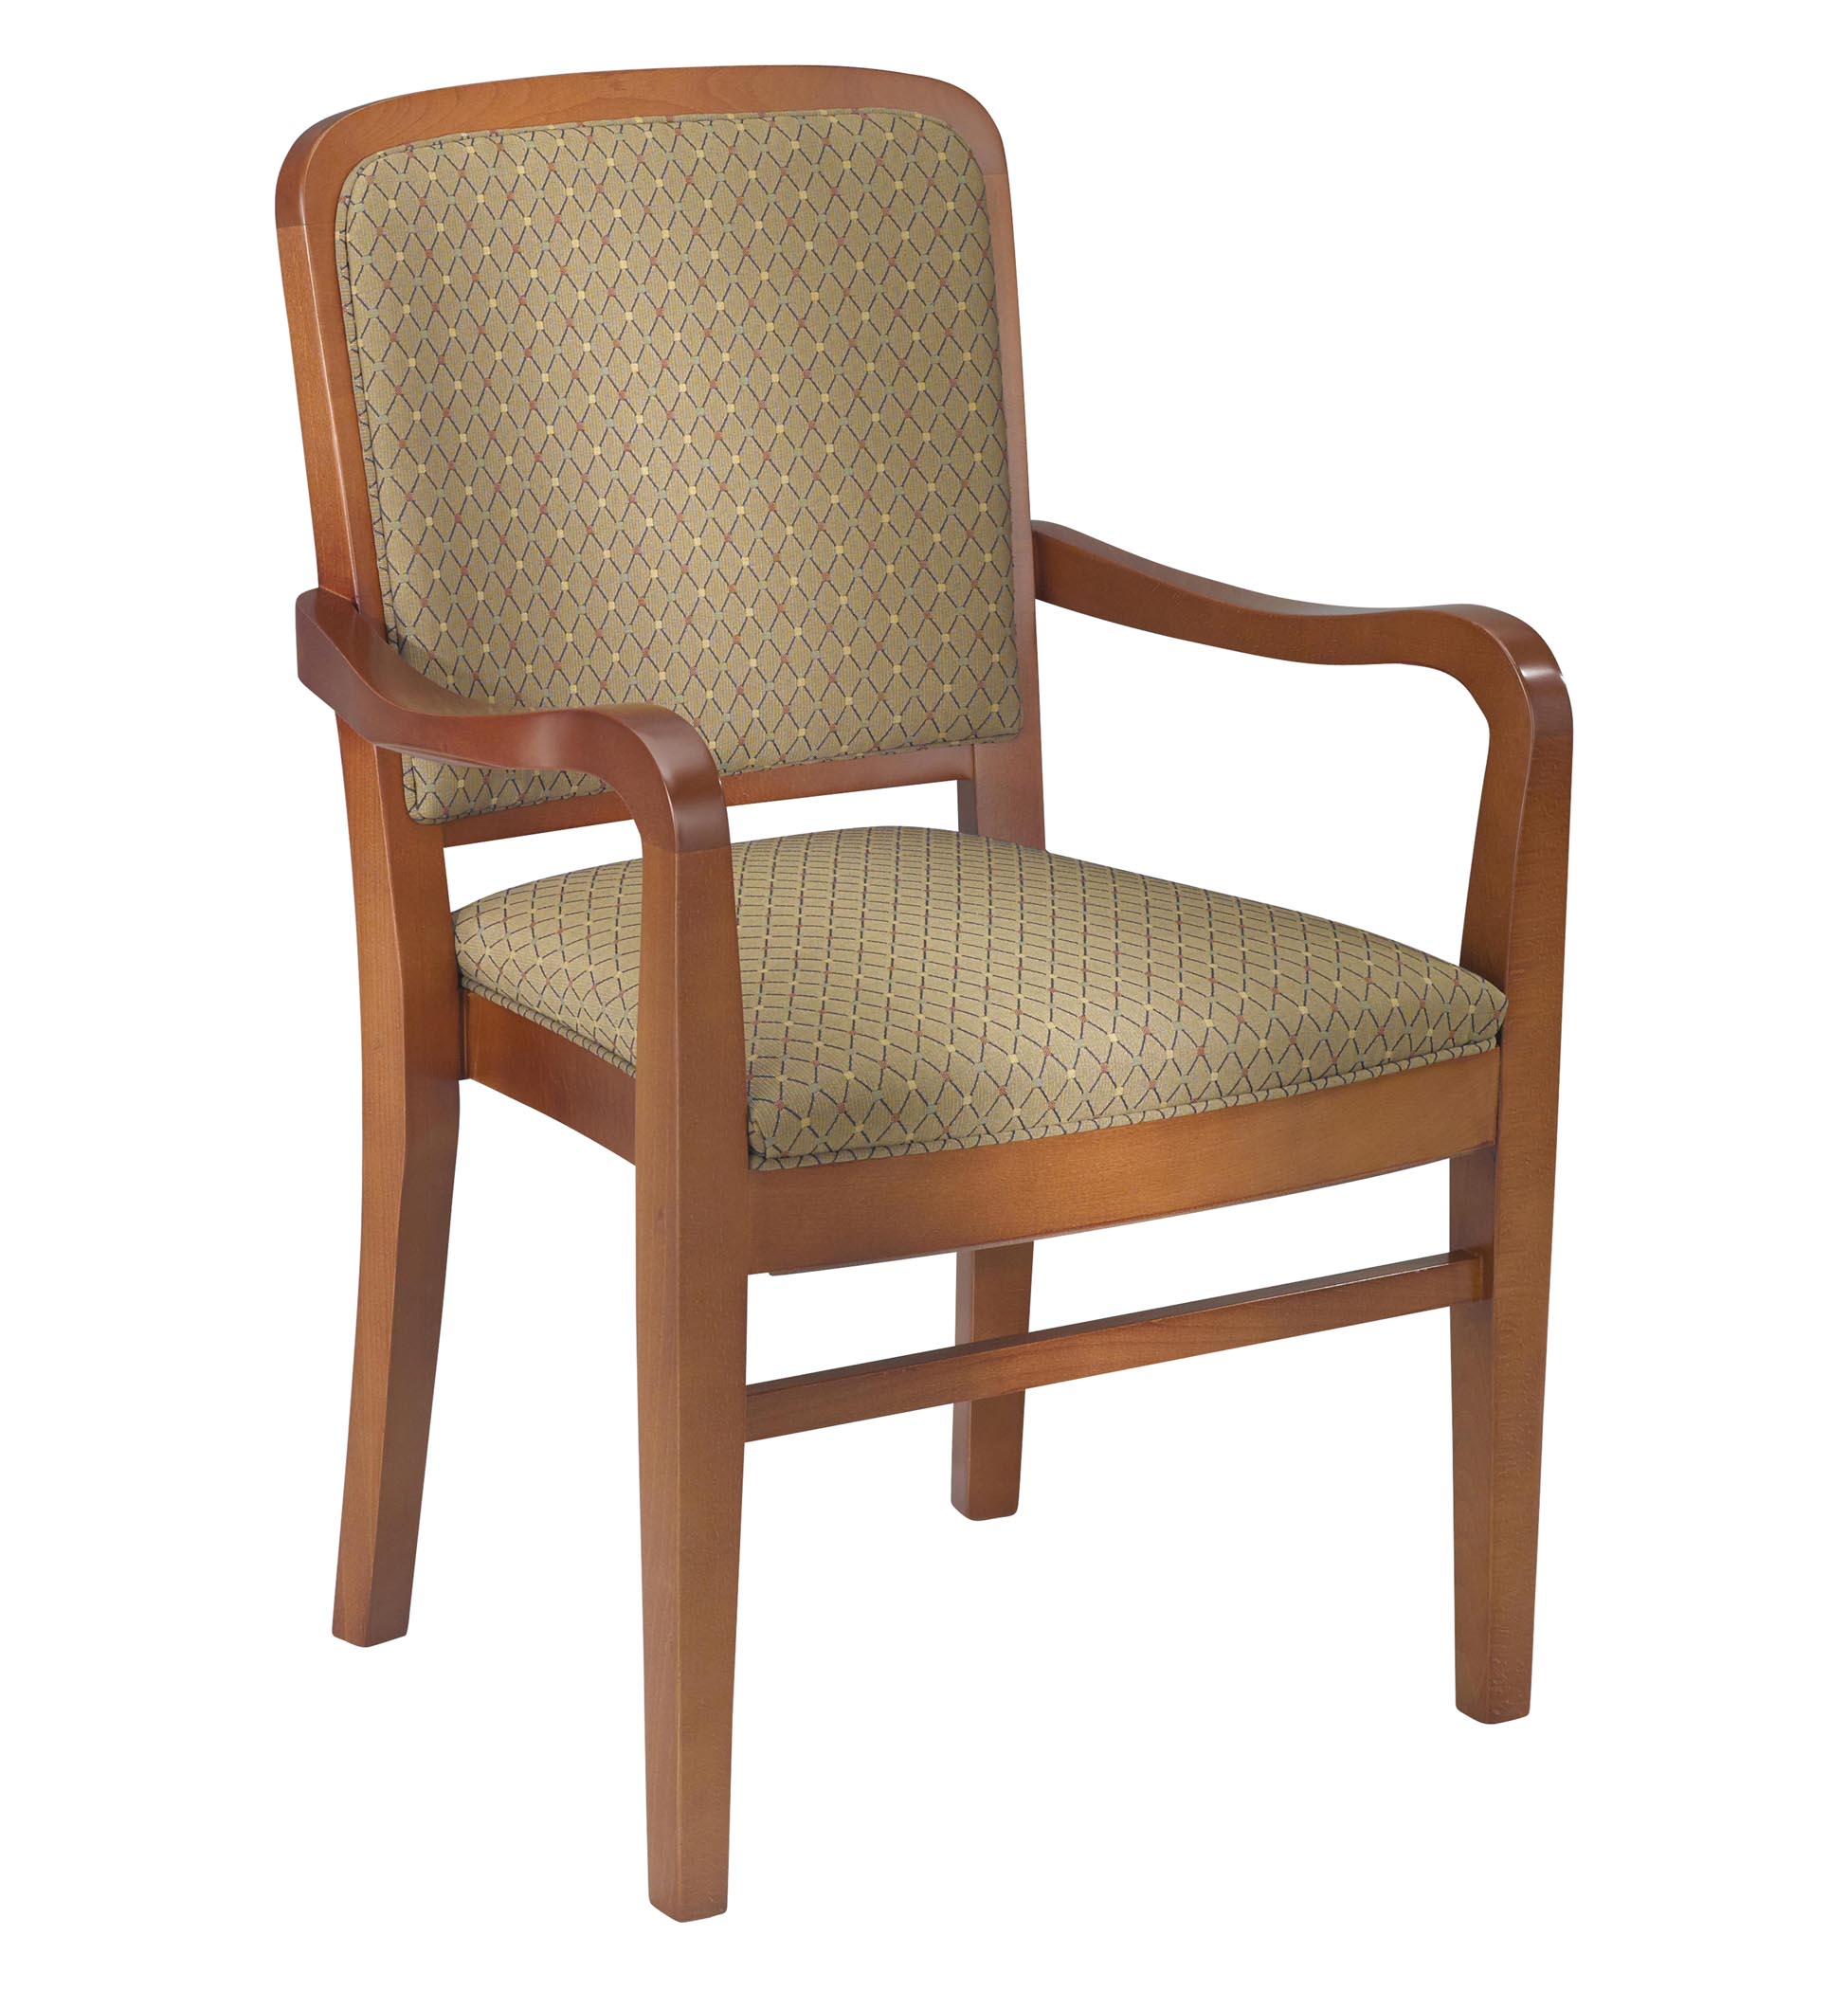 Wooden Chairs With Arms 2760 Stacking Wood Arm Chair